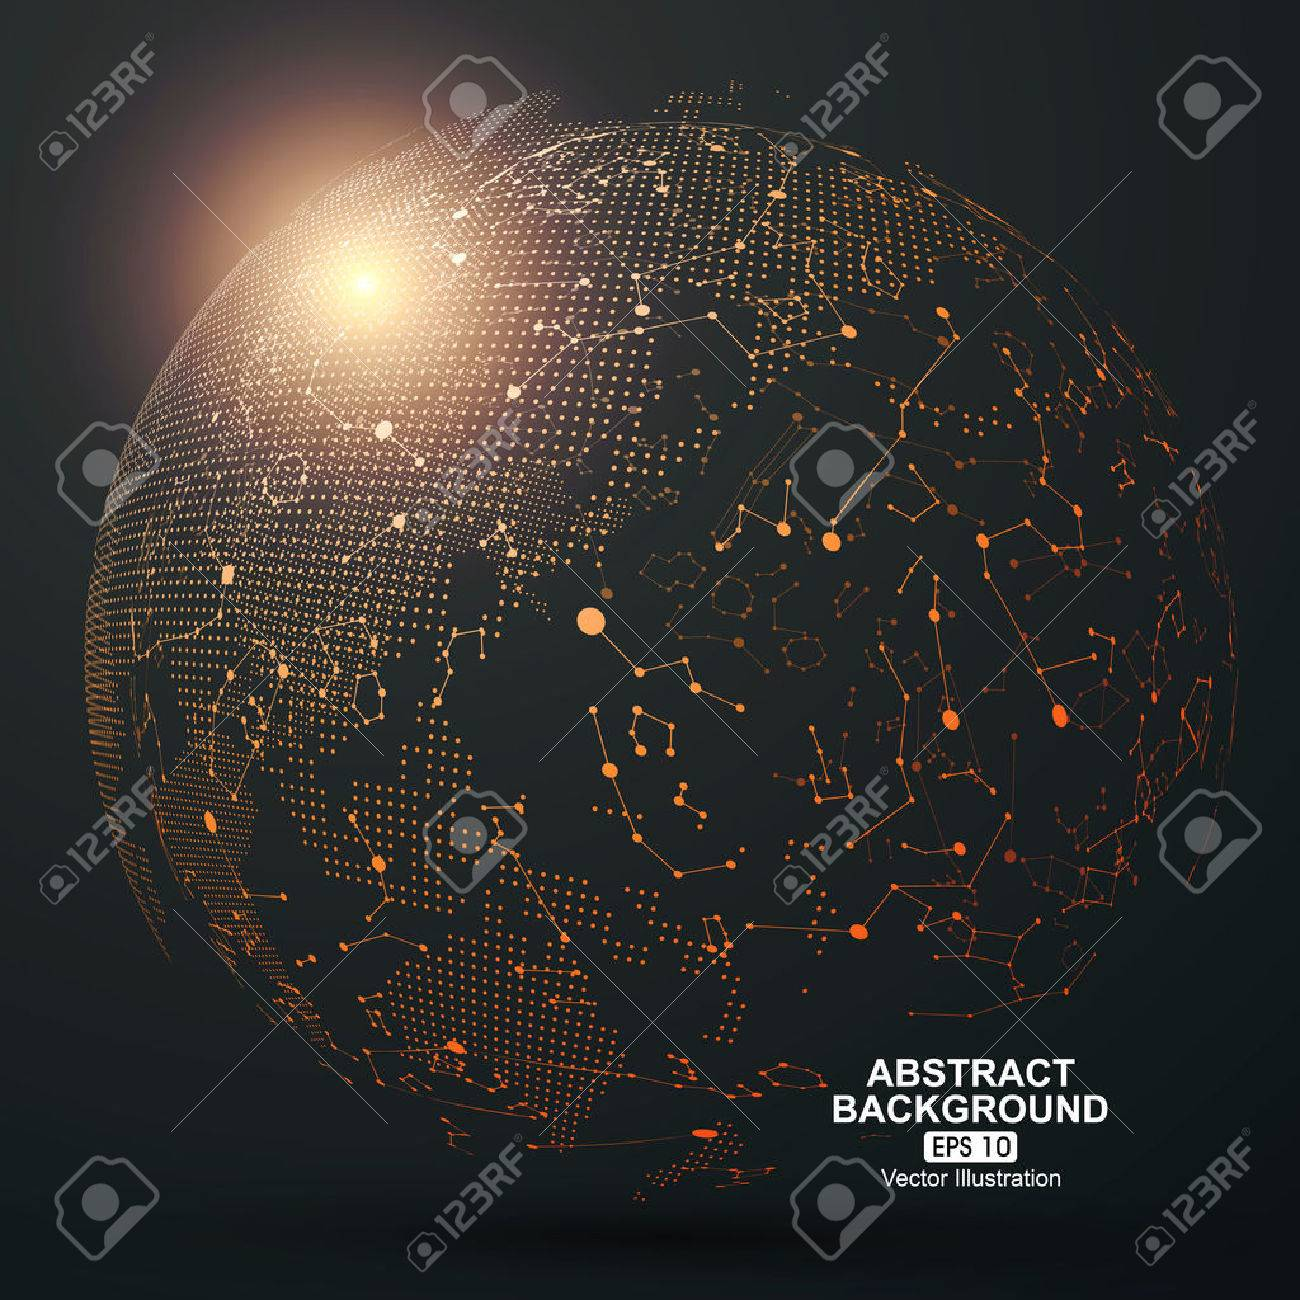 Point and curve constructed the sphere wireframe, technological sense abstract illustration. - 52744359